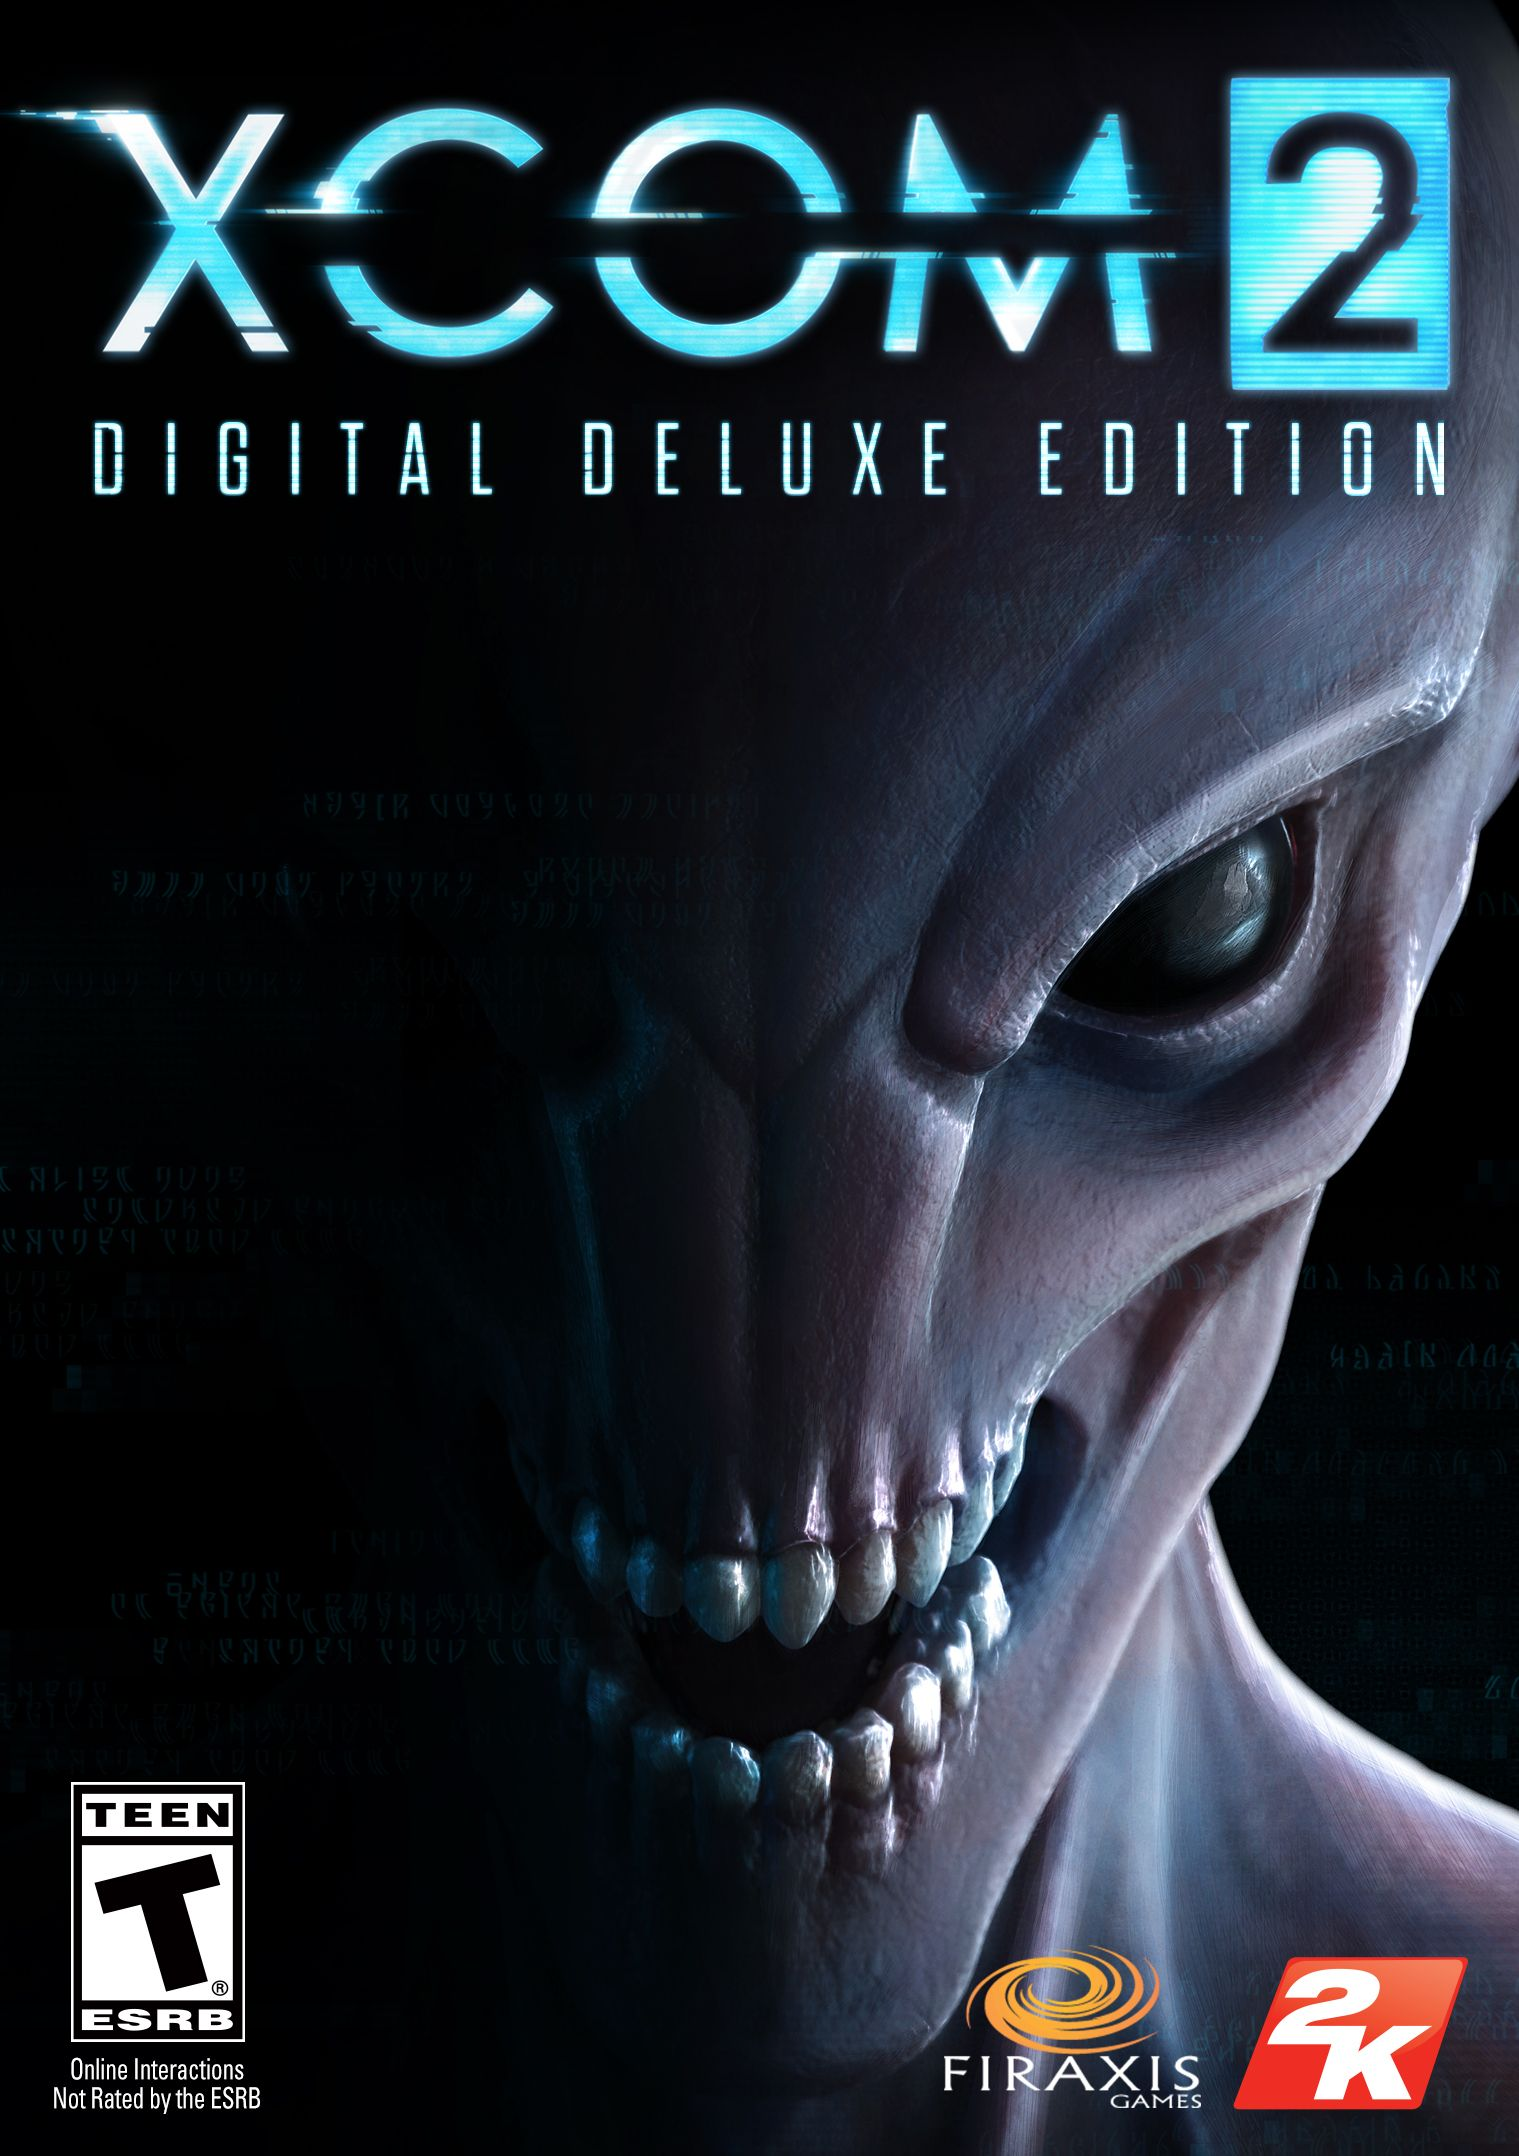 X-com collectors edition cd1 (ufo 1, ufo 2) rar pc game by.